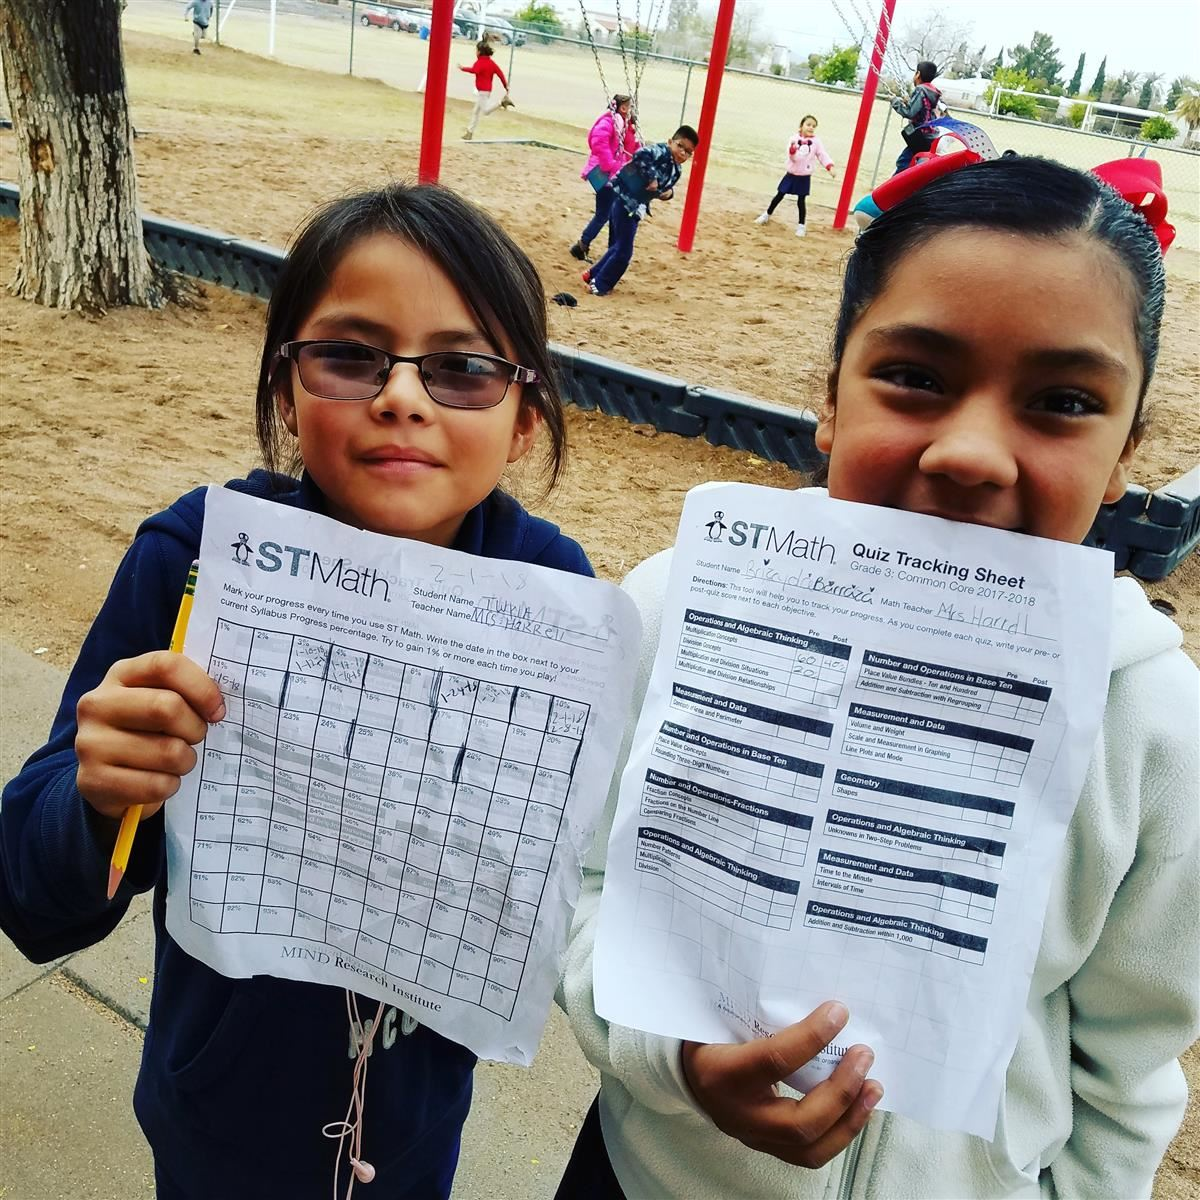 ST MATH Data Tracking